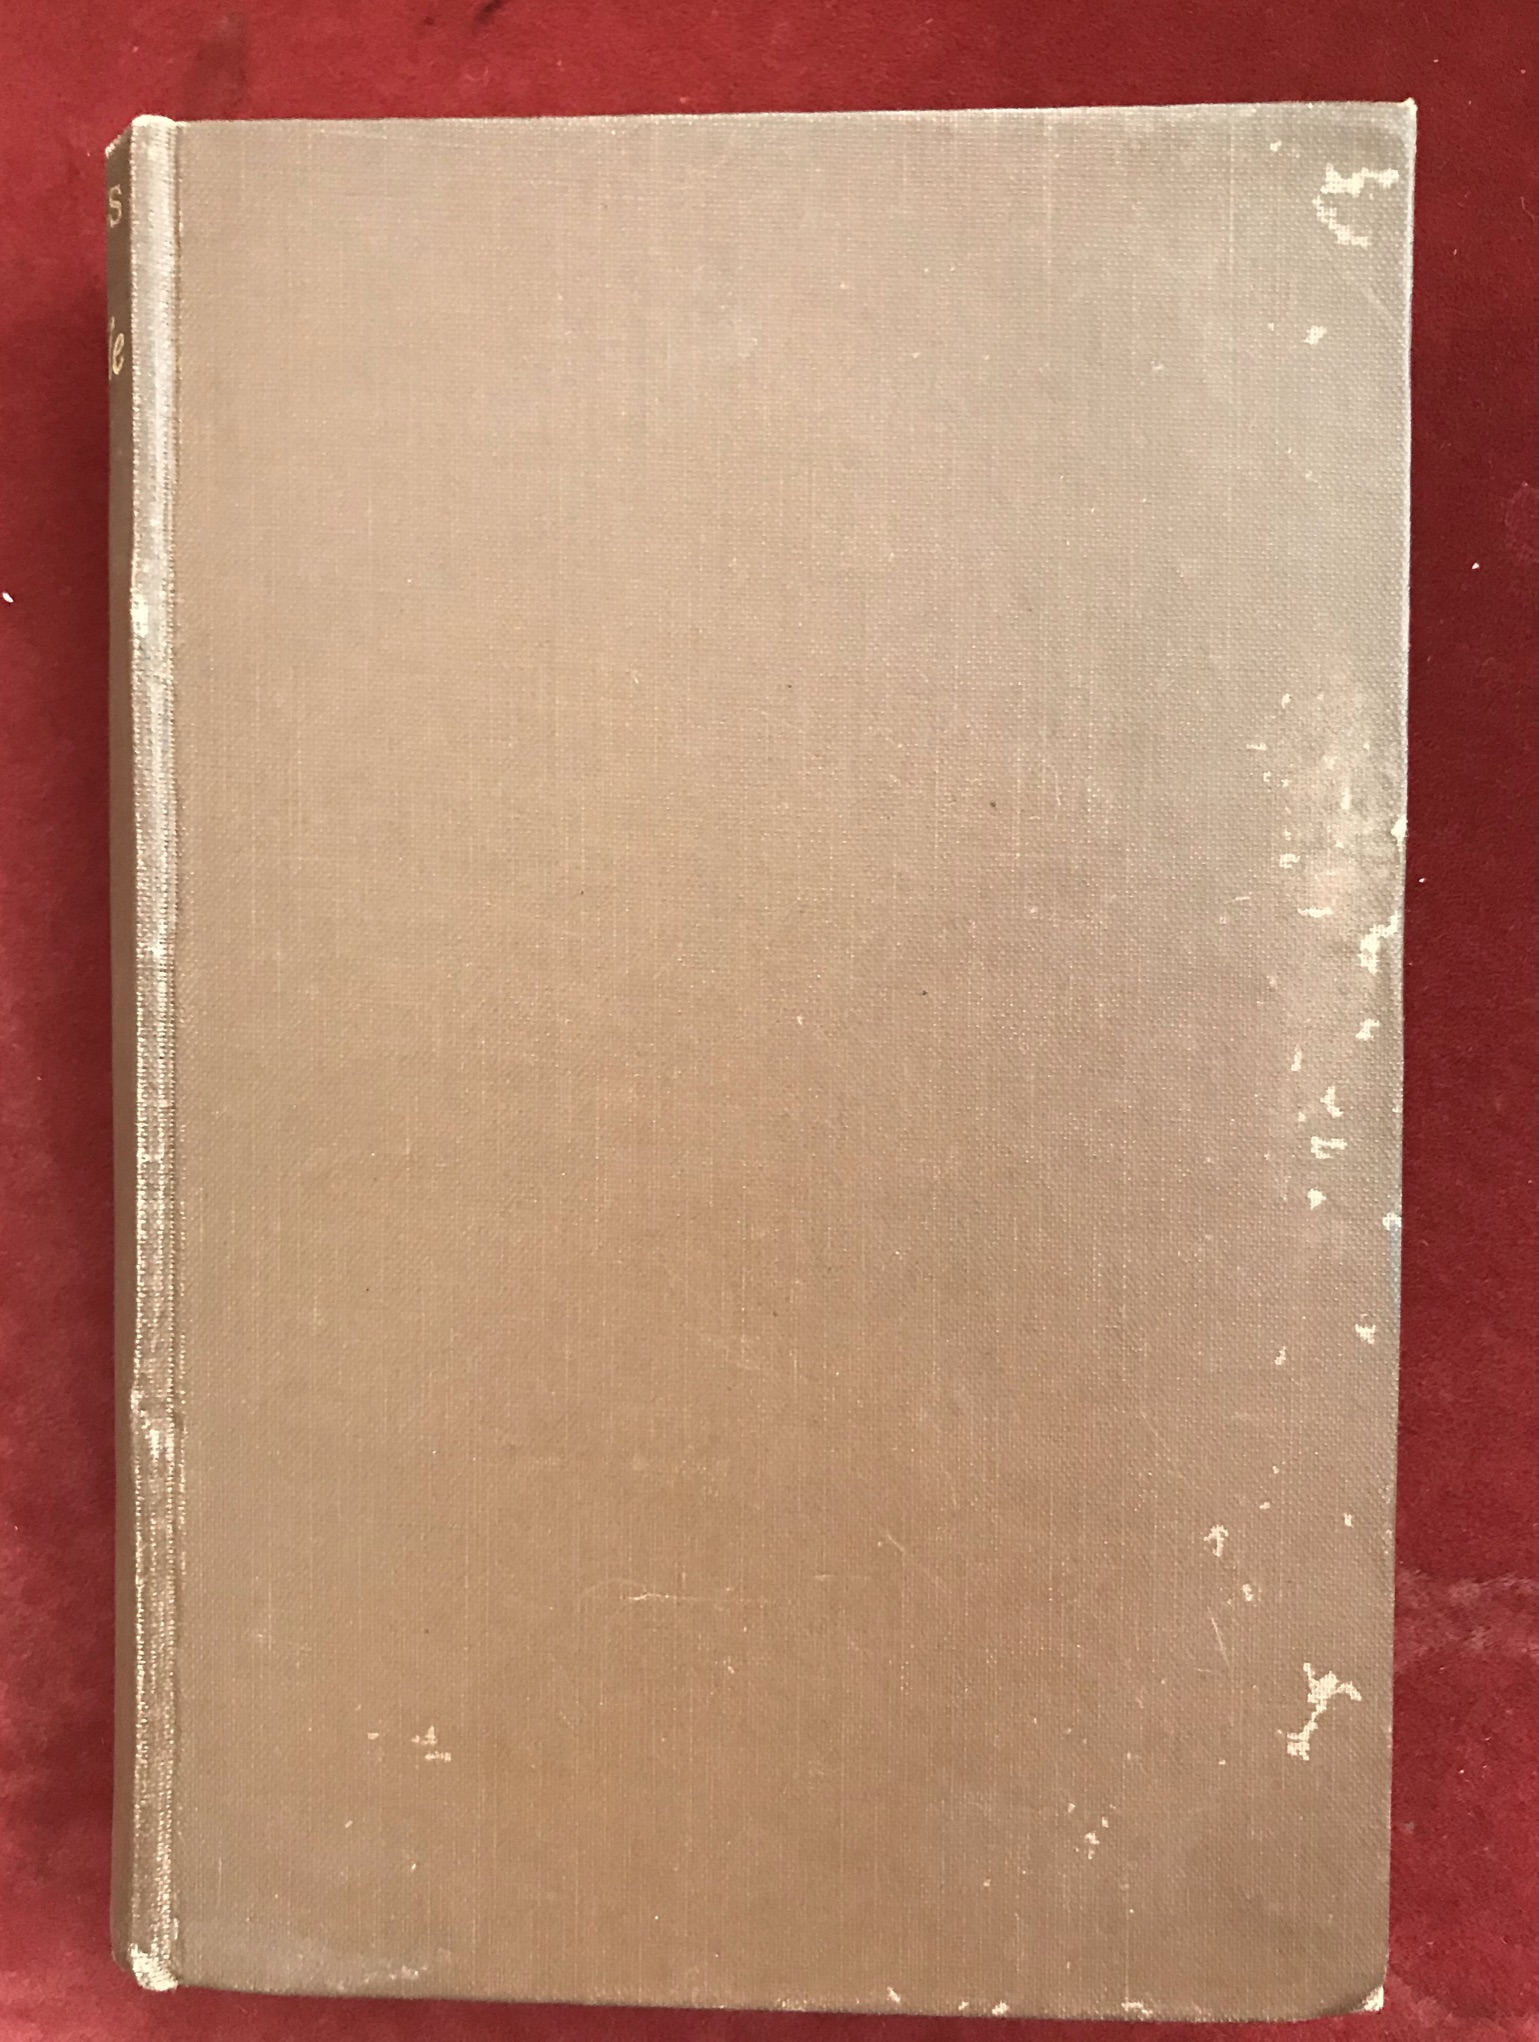 Meanwhile: The Picture of a LadyFirst edition, 1927 - Image 3 of 3